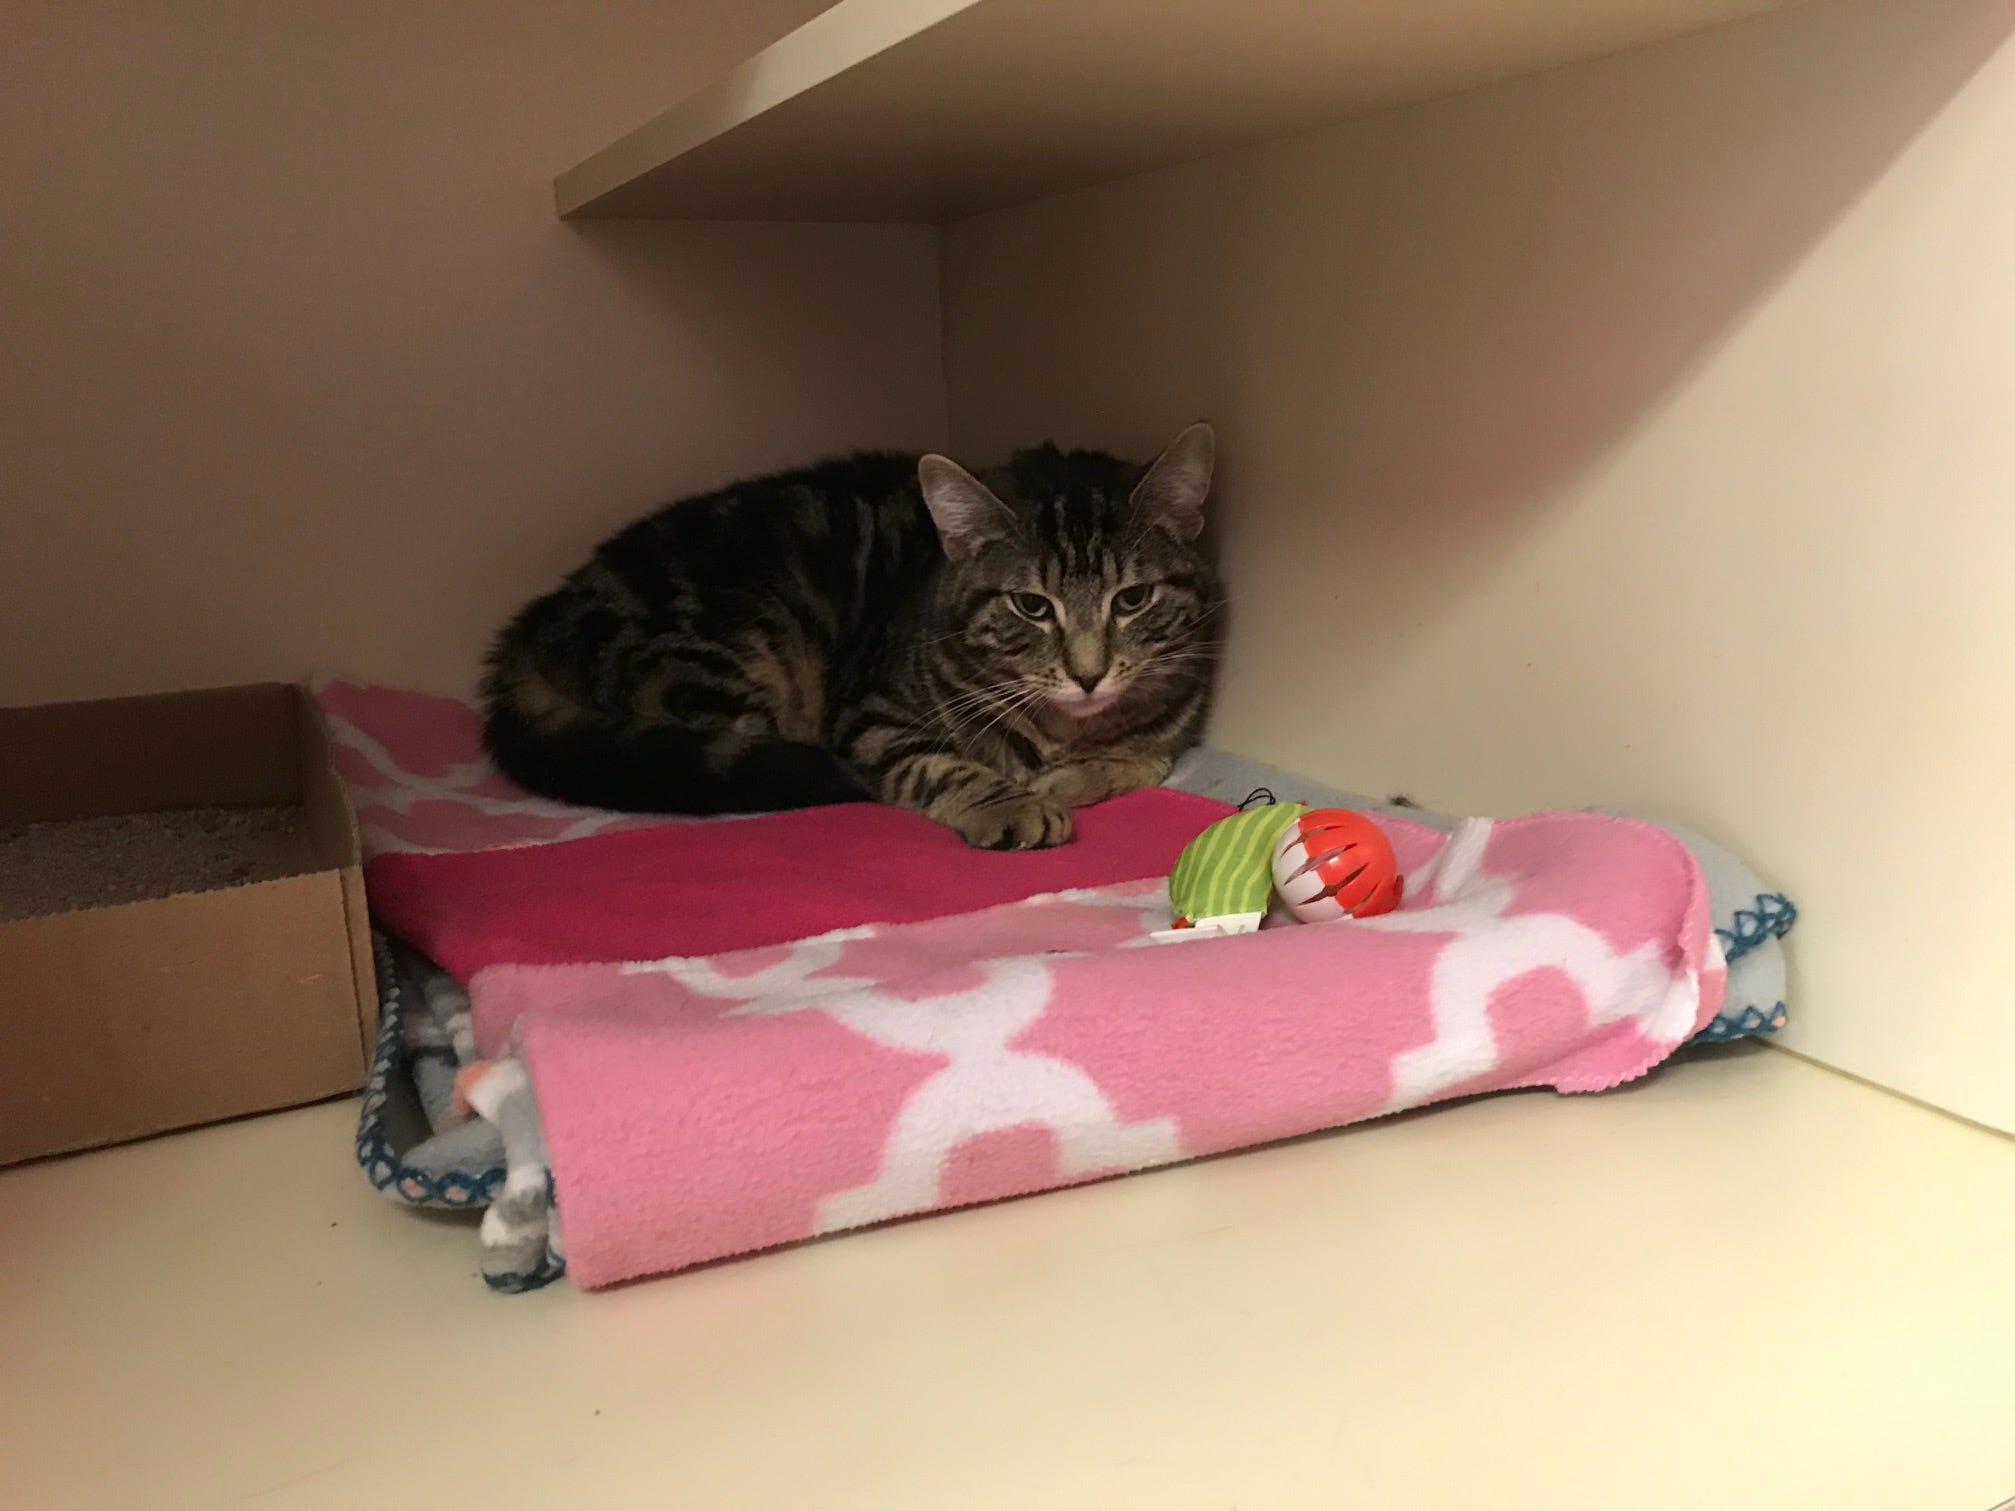 Lovergirl is a 9-month-old brown tabby. She can be adopted at New Beginnings Animal Shelter in East Brunswick.